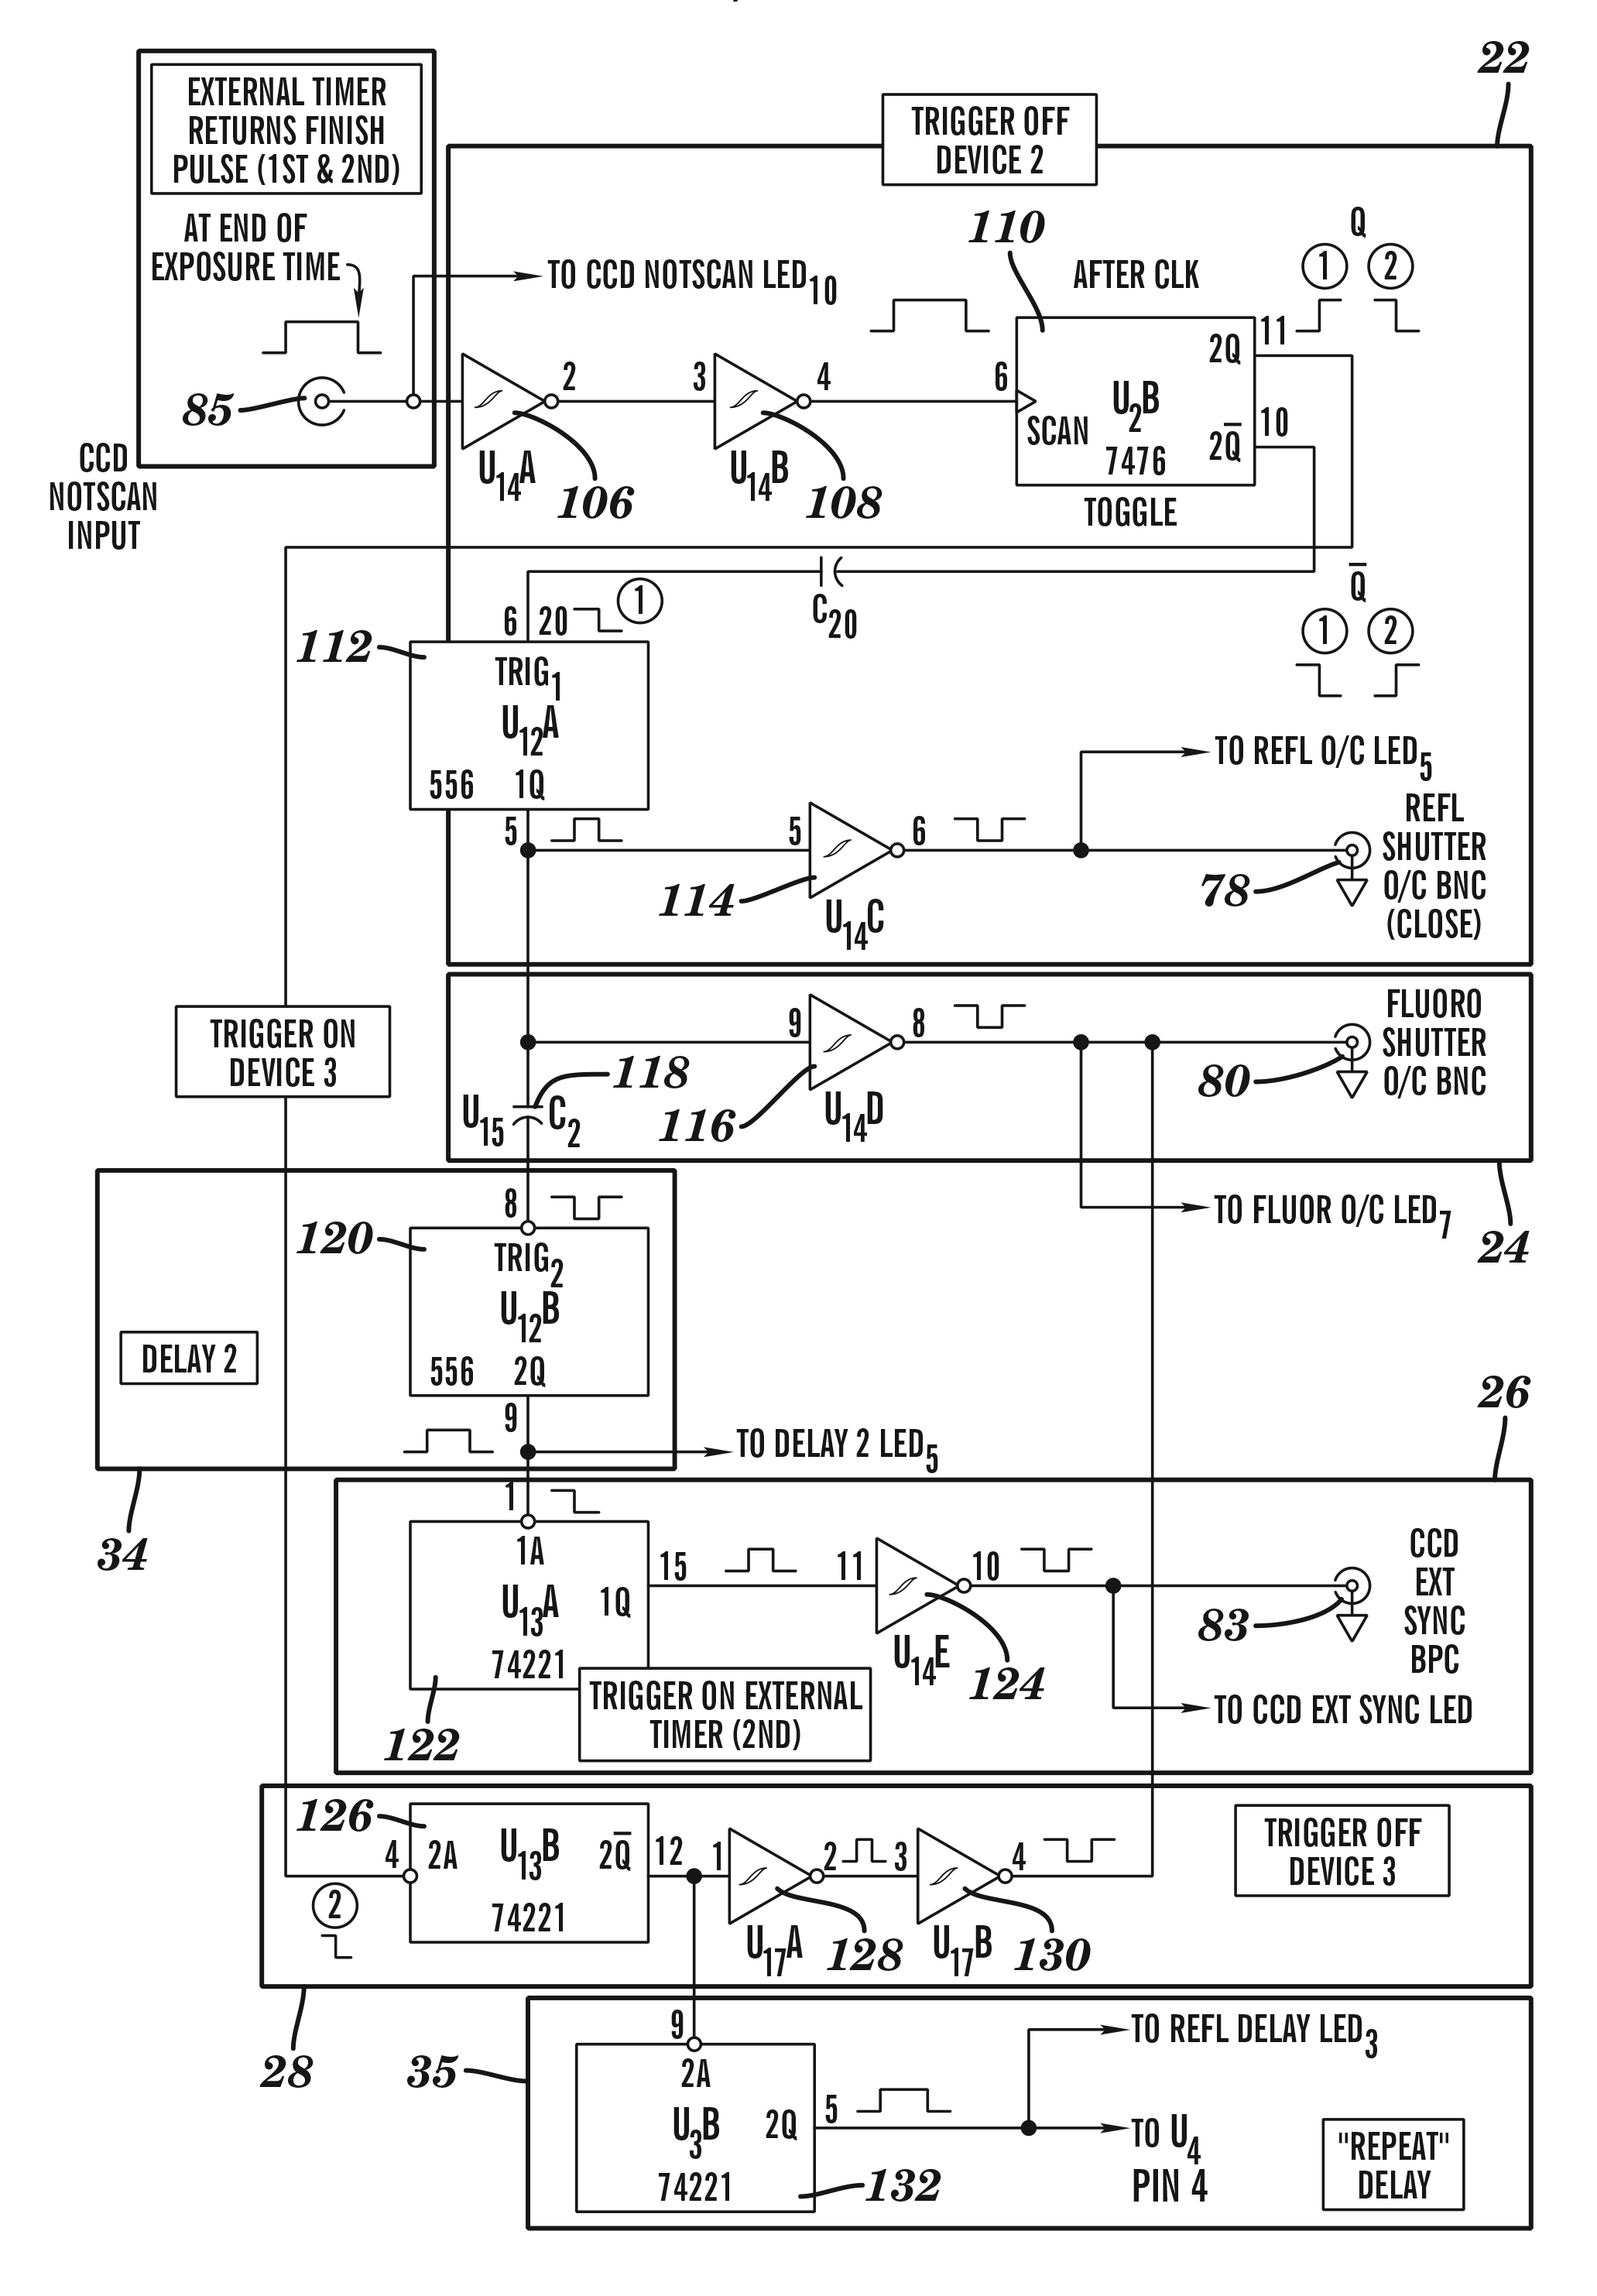 32_ptiserviceco_patent_drawing_electrical.png